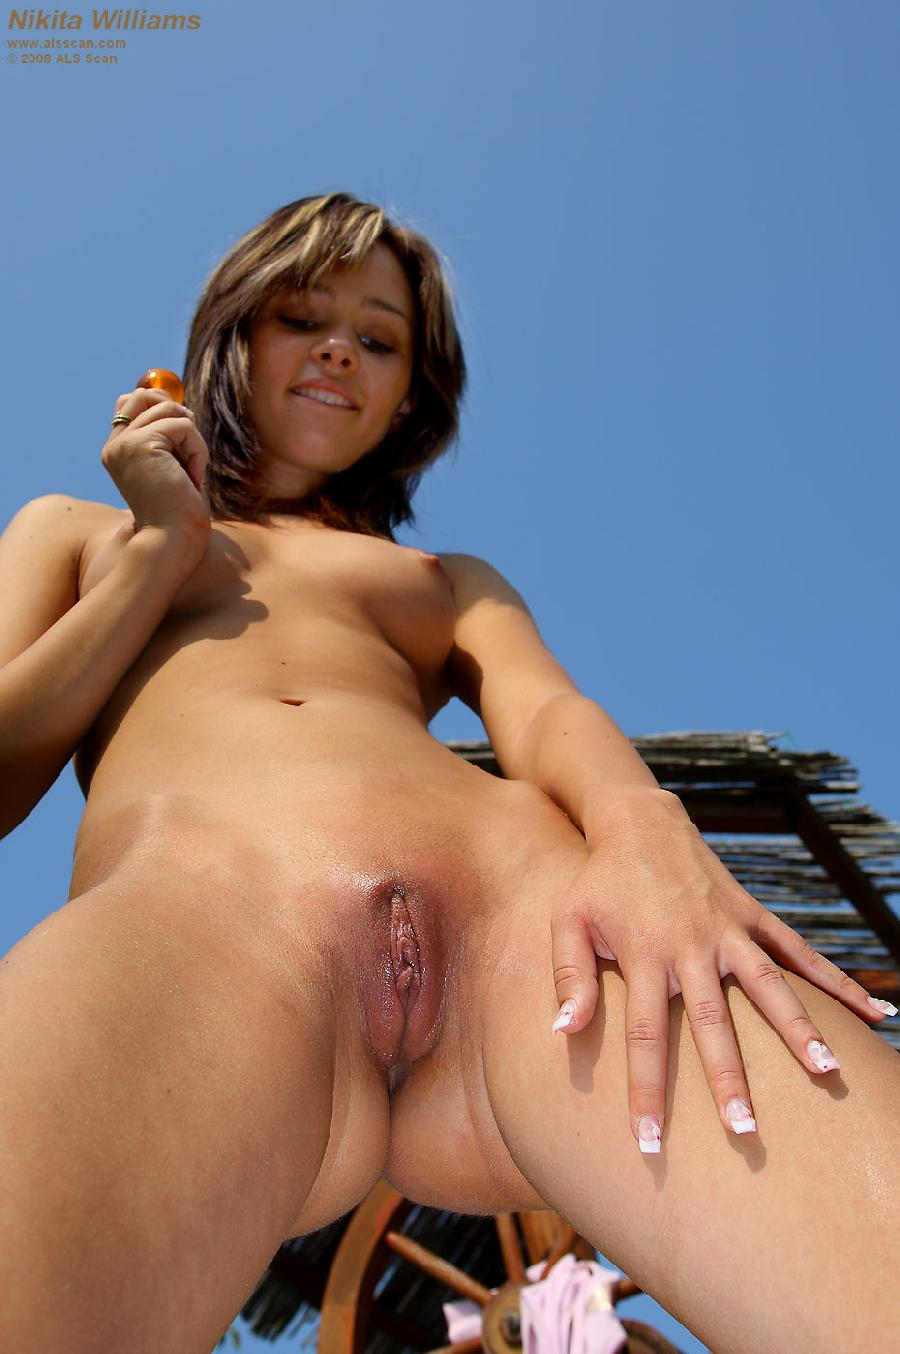 Pretty girlie on farm - Nikita Williams - 11